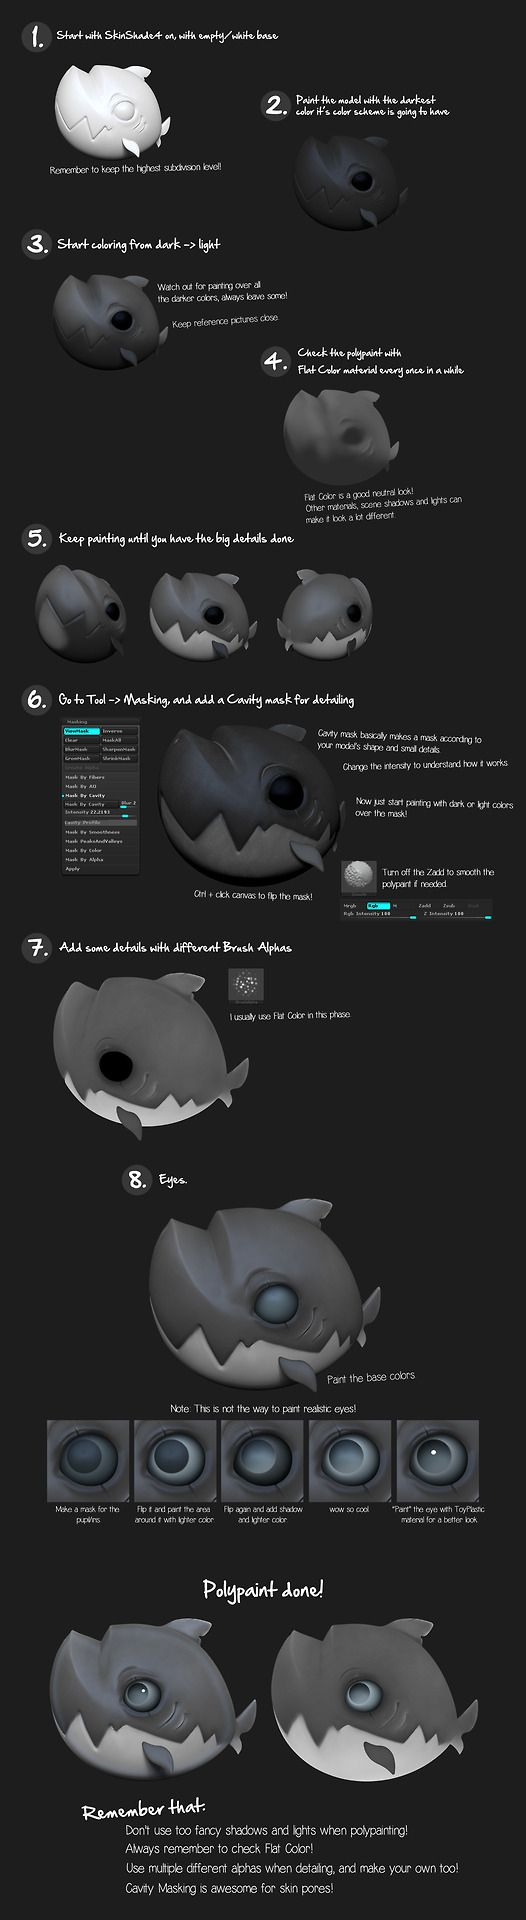 Zbrush polypaint tutorial